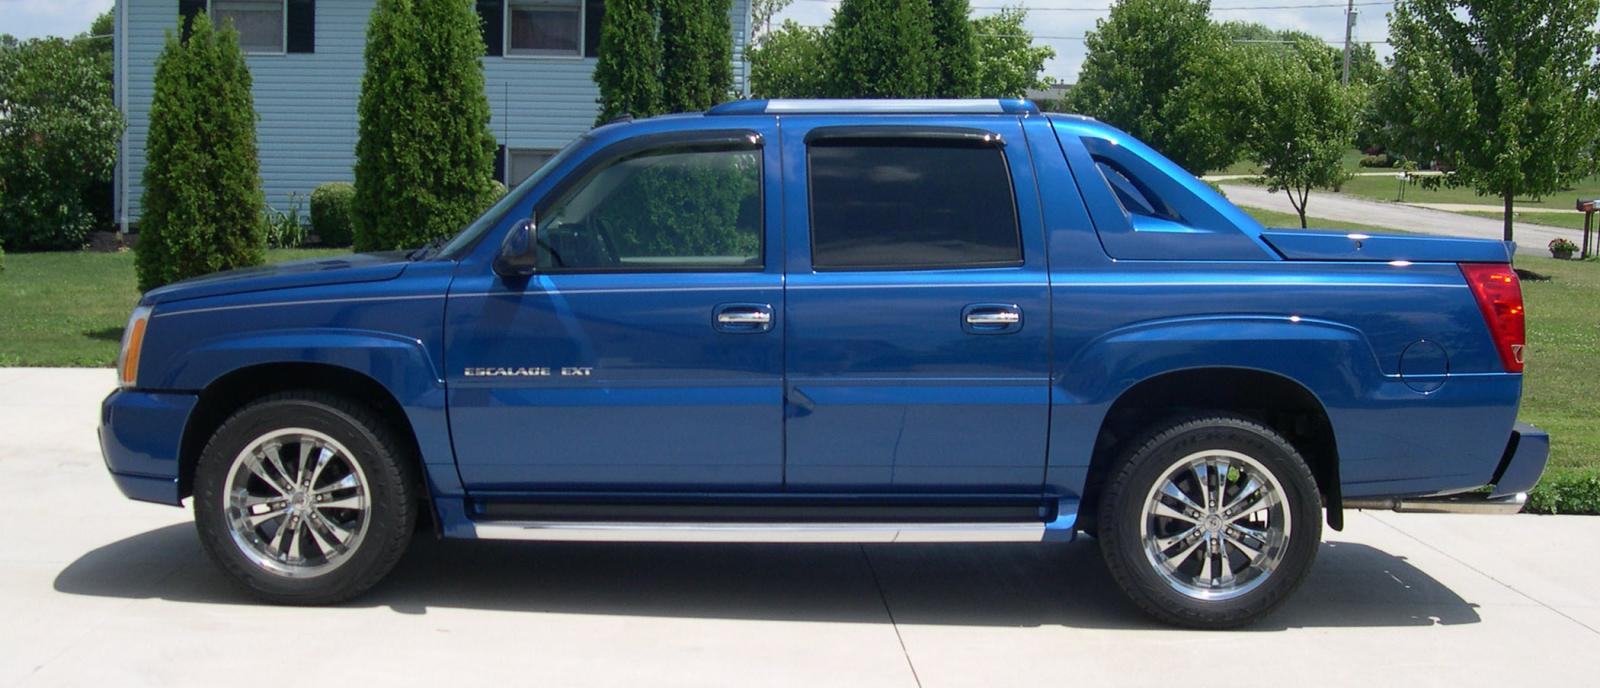 2005 cadillac escalade ext information and photos zombiedrive. Cars Review. Best American Auto & Cars Review